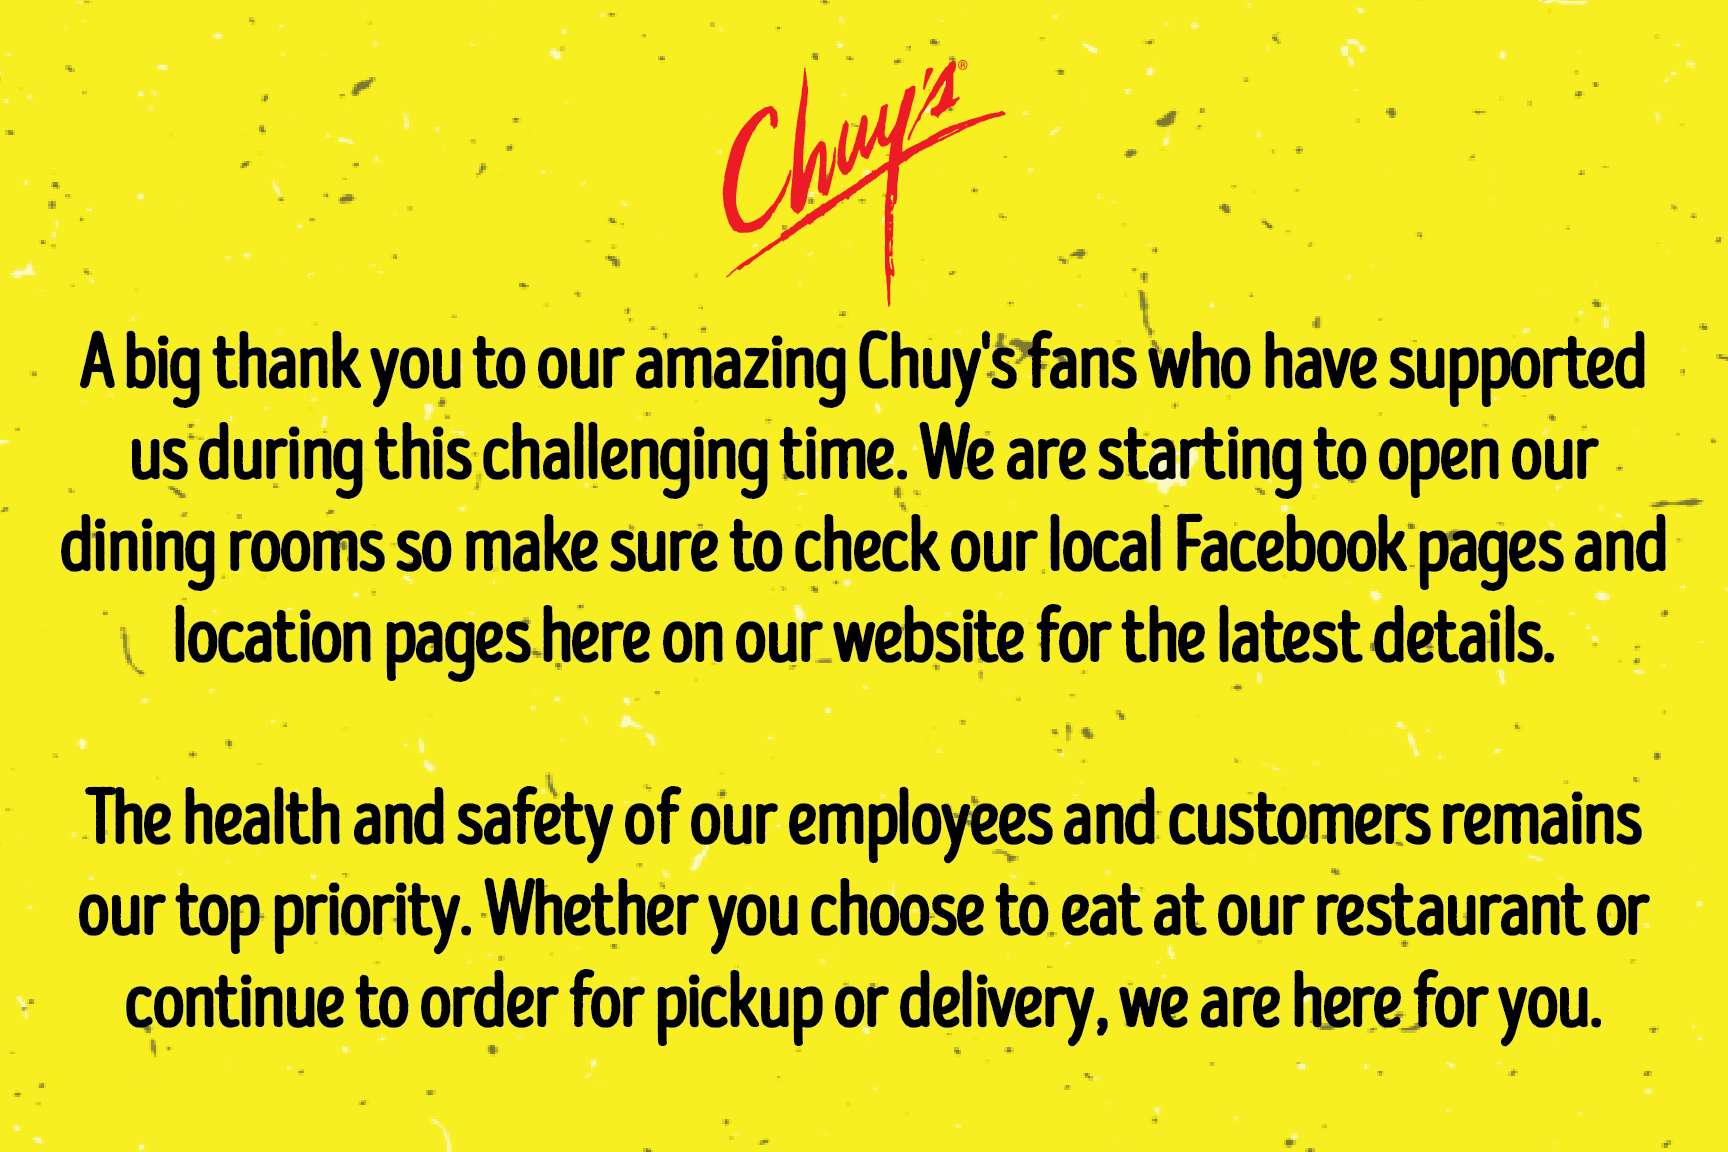 A big thank you to our amazing Chuy's fans who have supported us during this time. We are starting to open our dining rooms so make sure to check our website for the latest details. The health and safety of our employees and customers is a top priority.